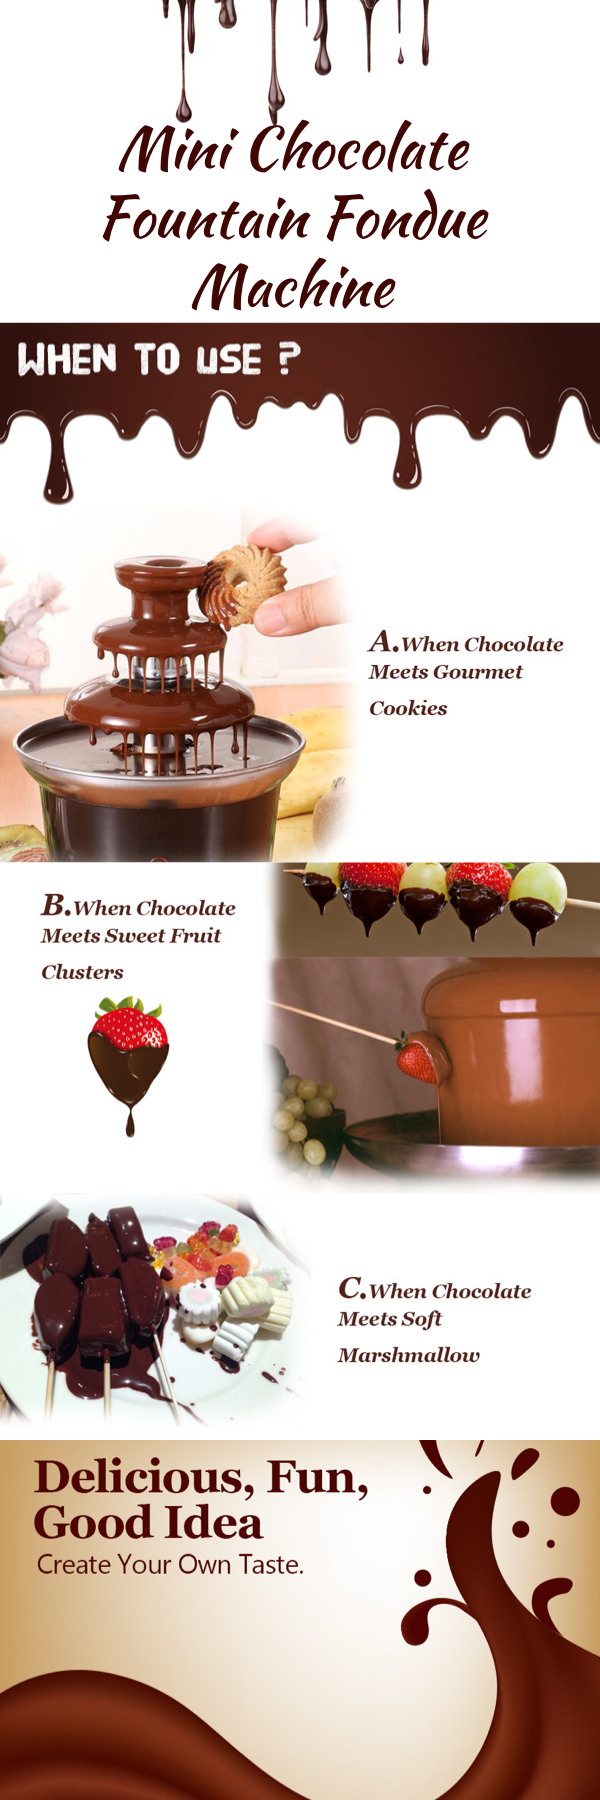 Mini Chocolate Fountain Fondue Machine | Home Decor & Party Decoration Gifts #chocolatefountainfoods